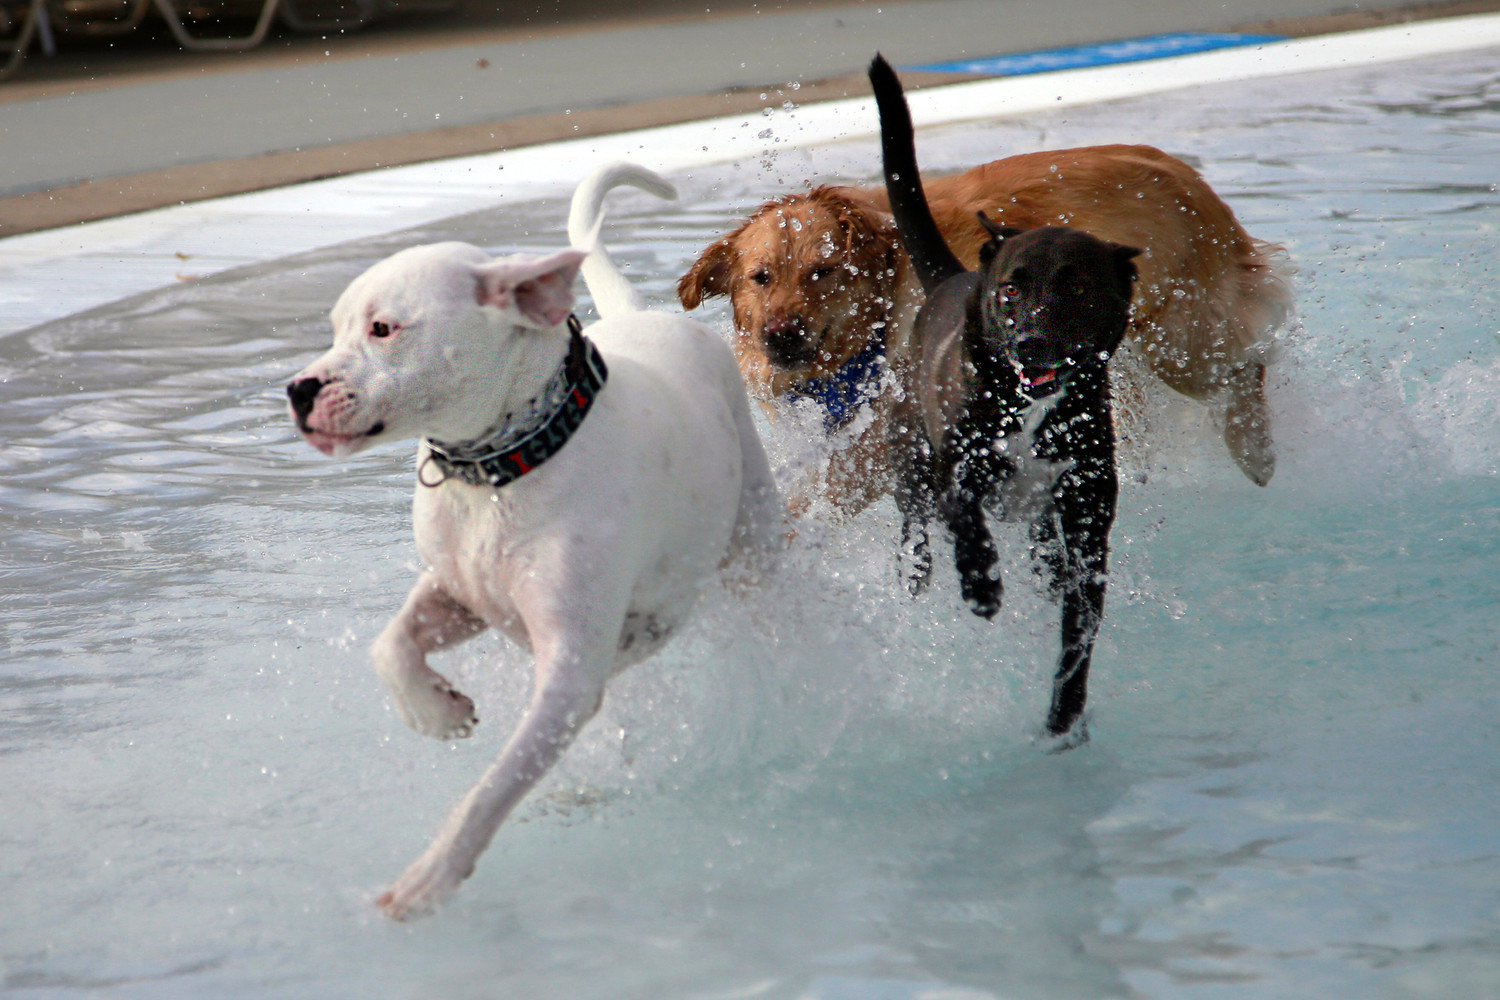 Dogs got the opportunity to frolic through the splash pool at Arthur J. Hendrickson Park for the village's fourth annual Doggie Pool Party.